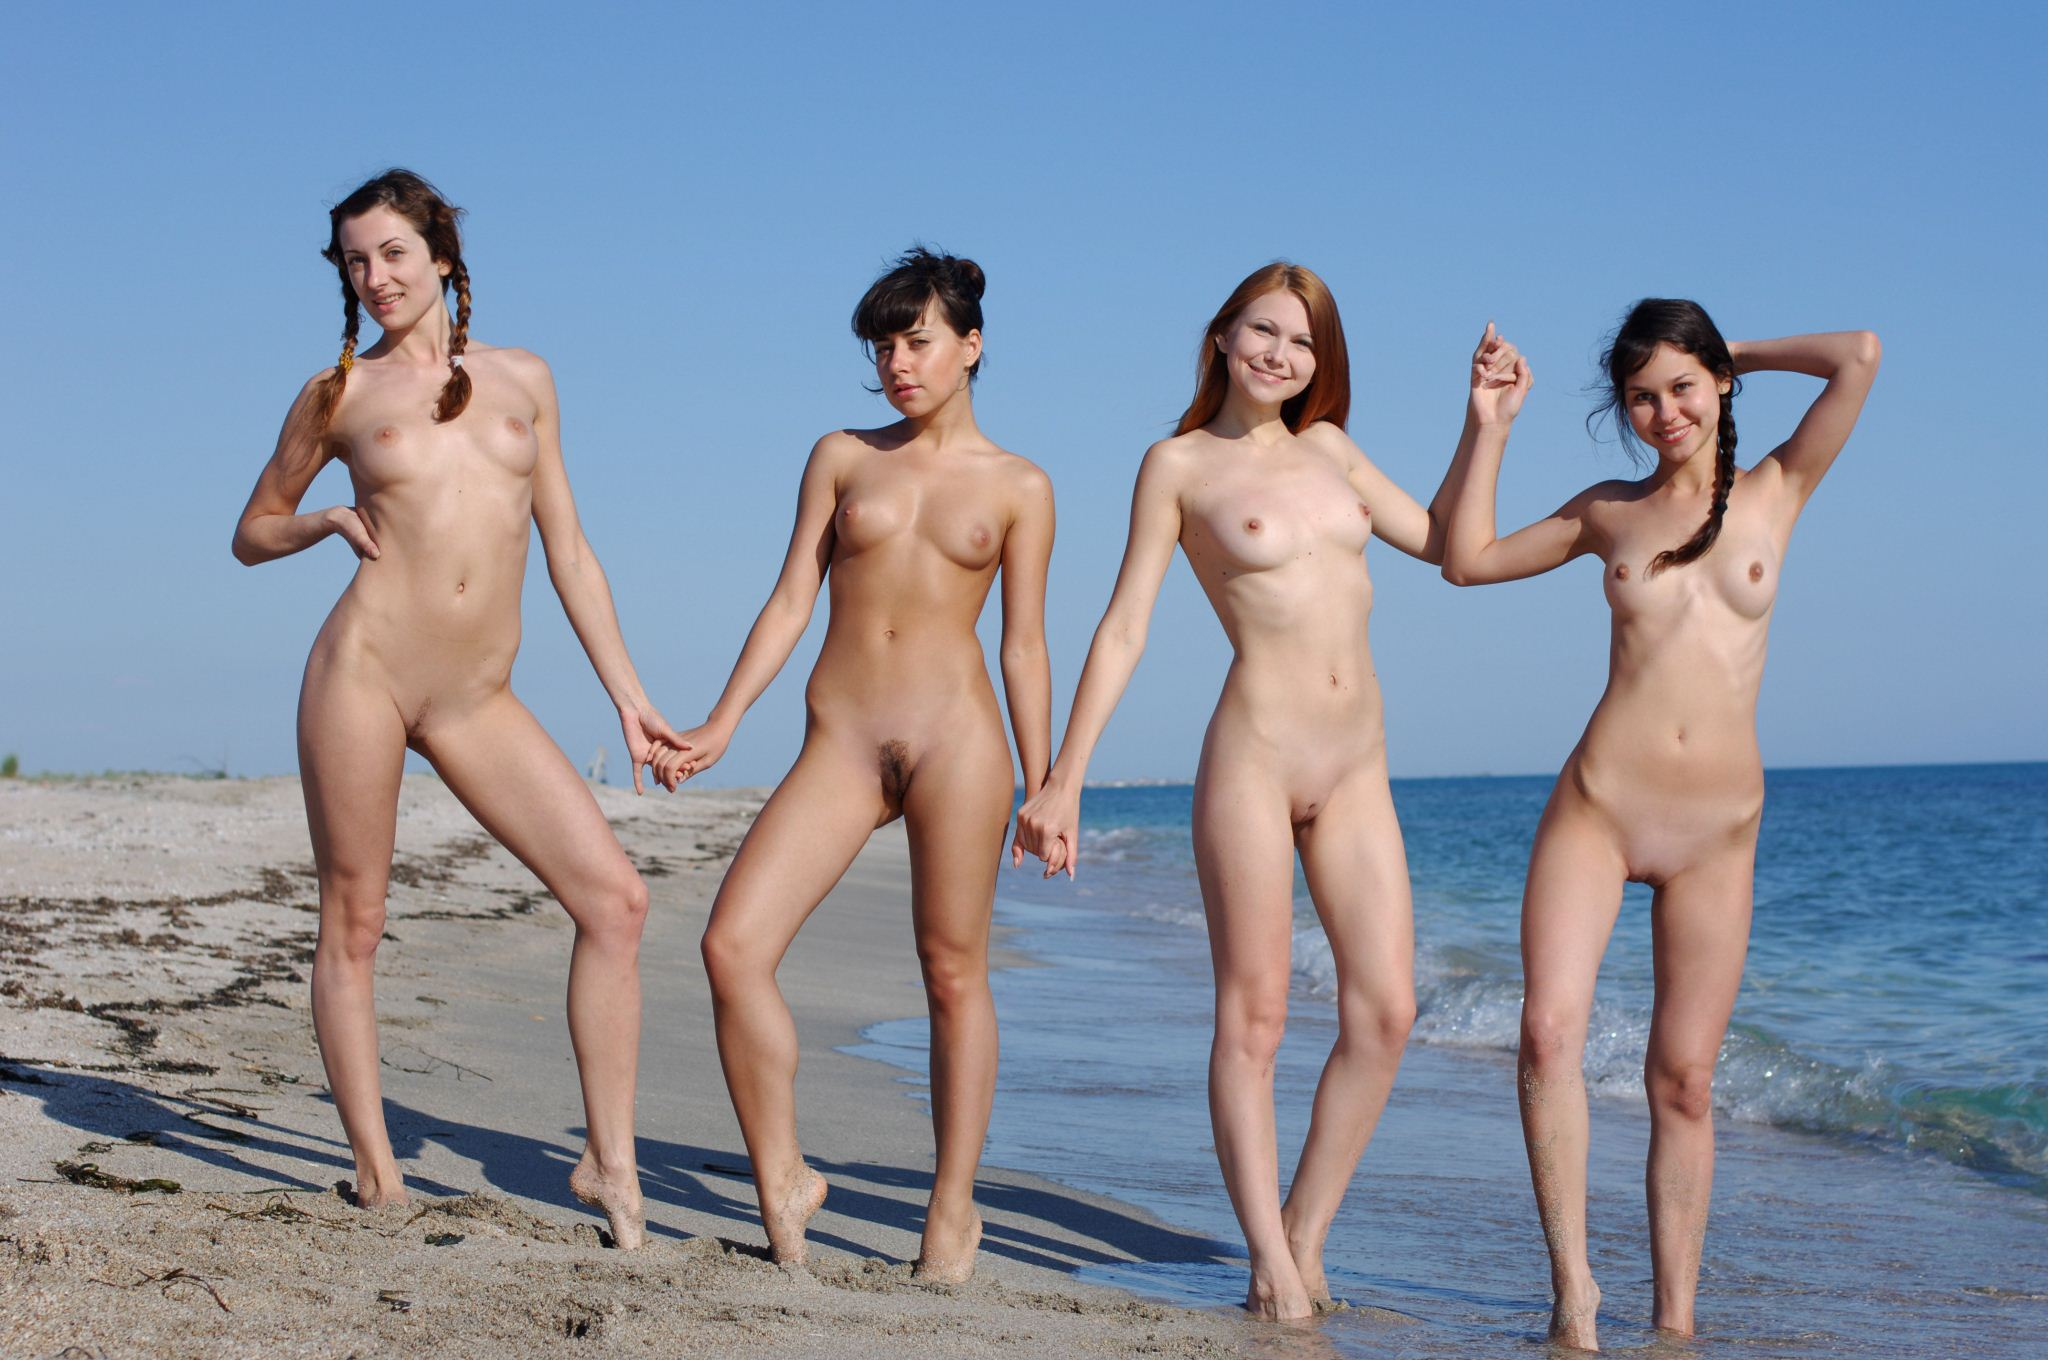 family-nudist-japan-sexies-young-boys-nudes